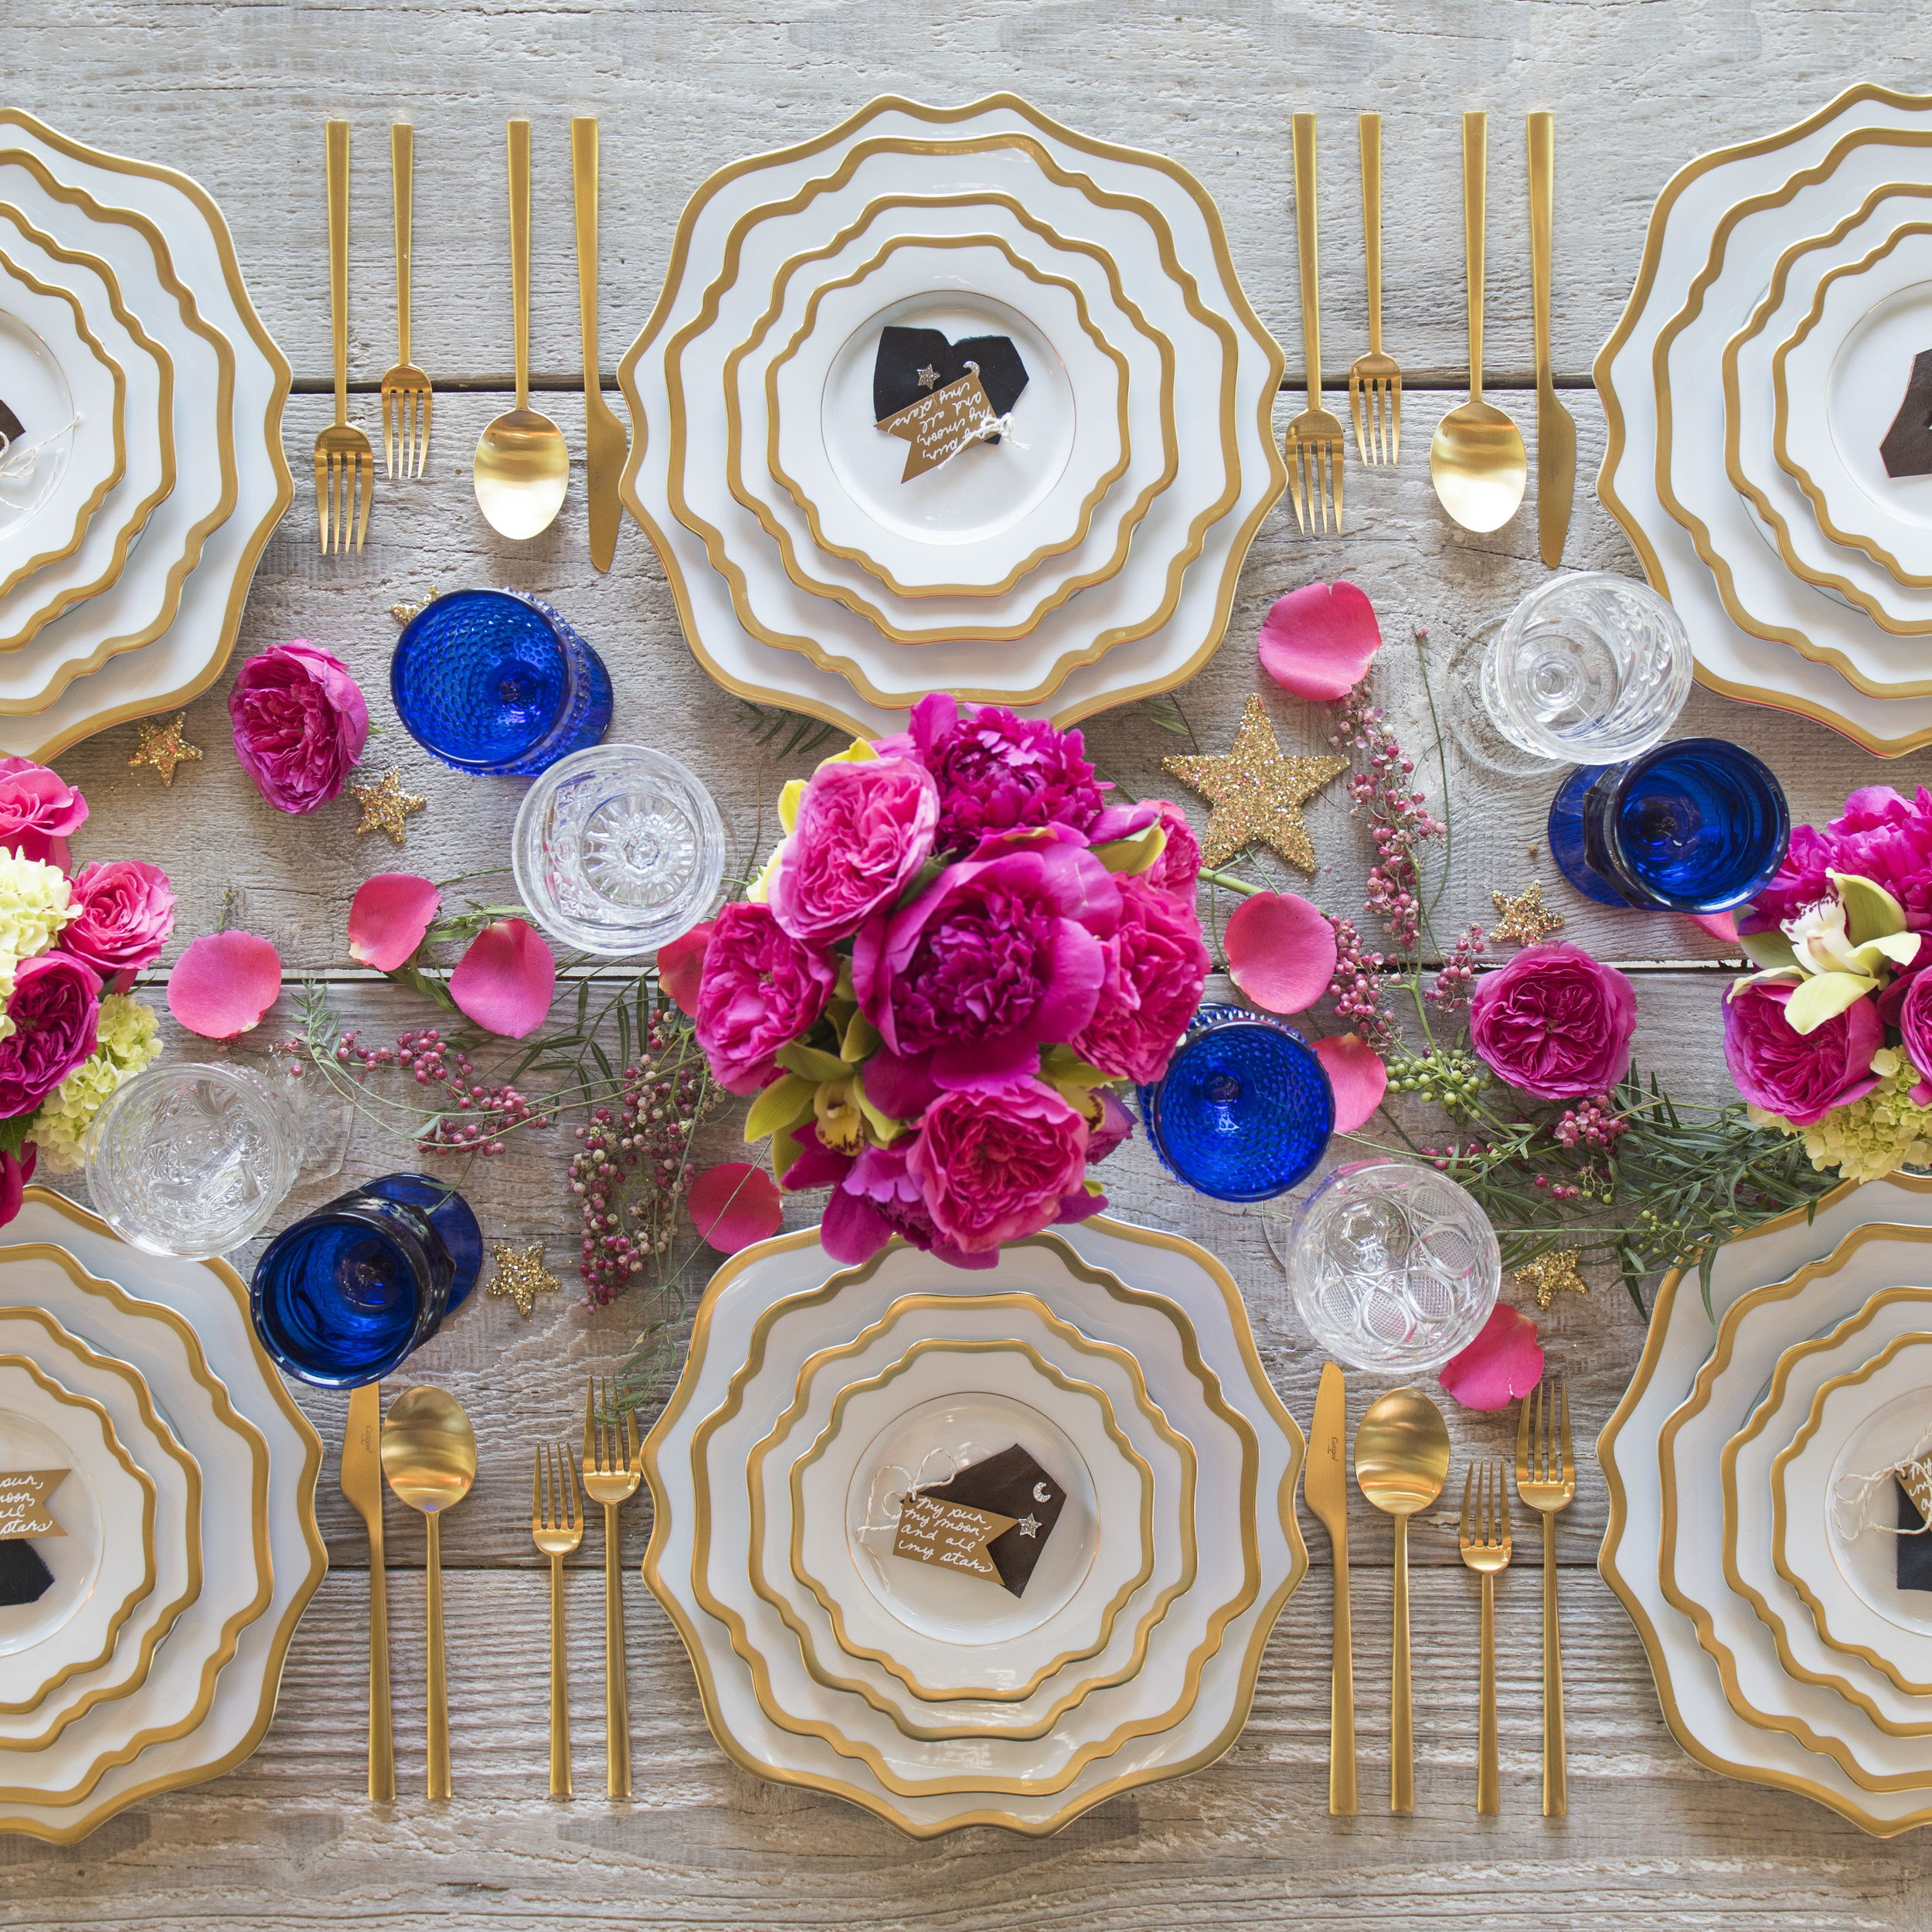 RENT: Anna Weatherley Chargers/Dinnerware in White/Gold + Rondo Flatware in Brushed 24k Gold + Dark Blue Vintage Goblets + Early American Pressed Glass Goblets   SHOP: Anna Weatherley Chargers/Dinnerware in White/Gold + Rondo Flatware in Brushed 24k Gold